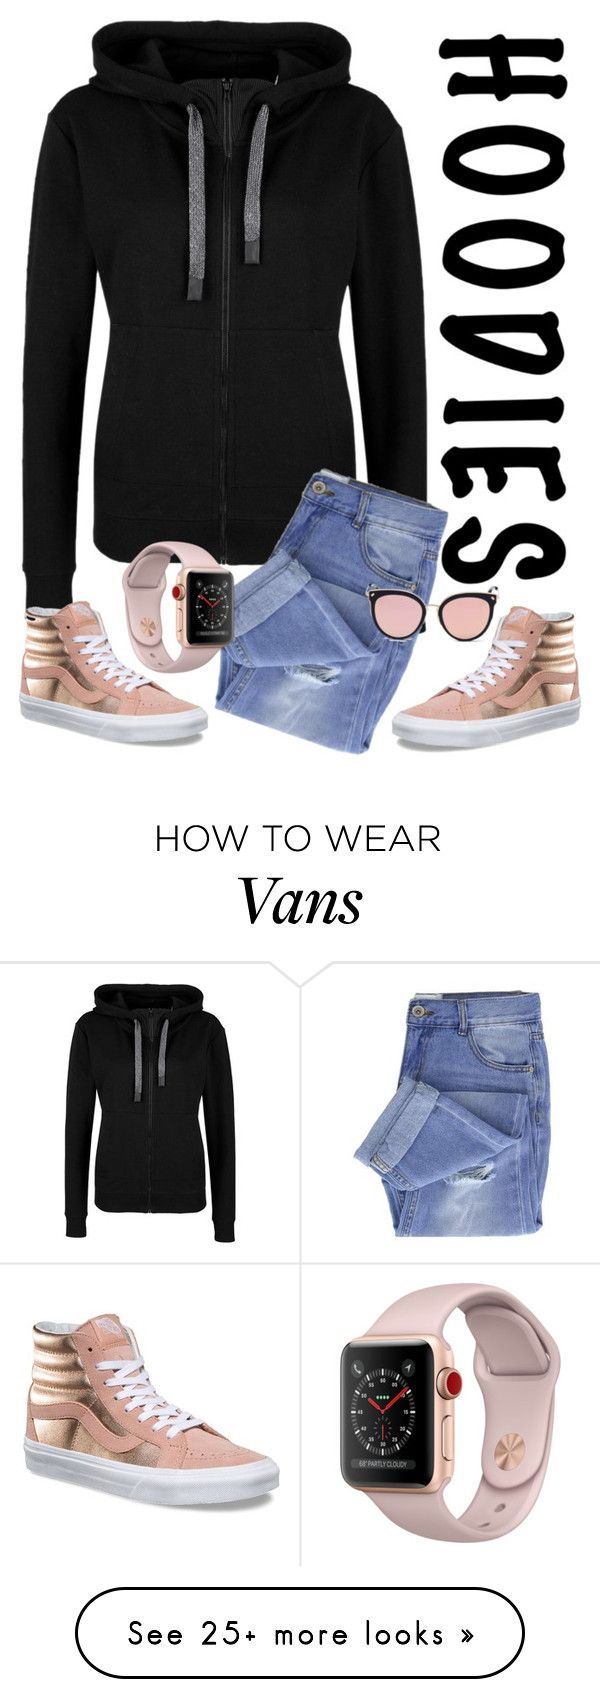 """""""Untitled #170"""" by caprice888 on Polyvore featuring Vans, Taya, Stephane + Christian and Hoodies"""